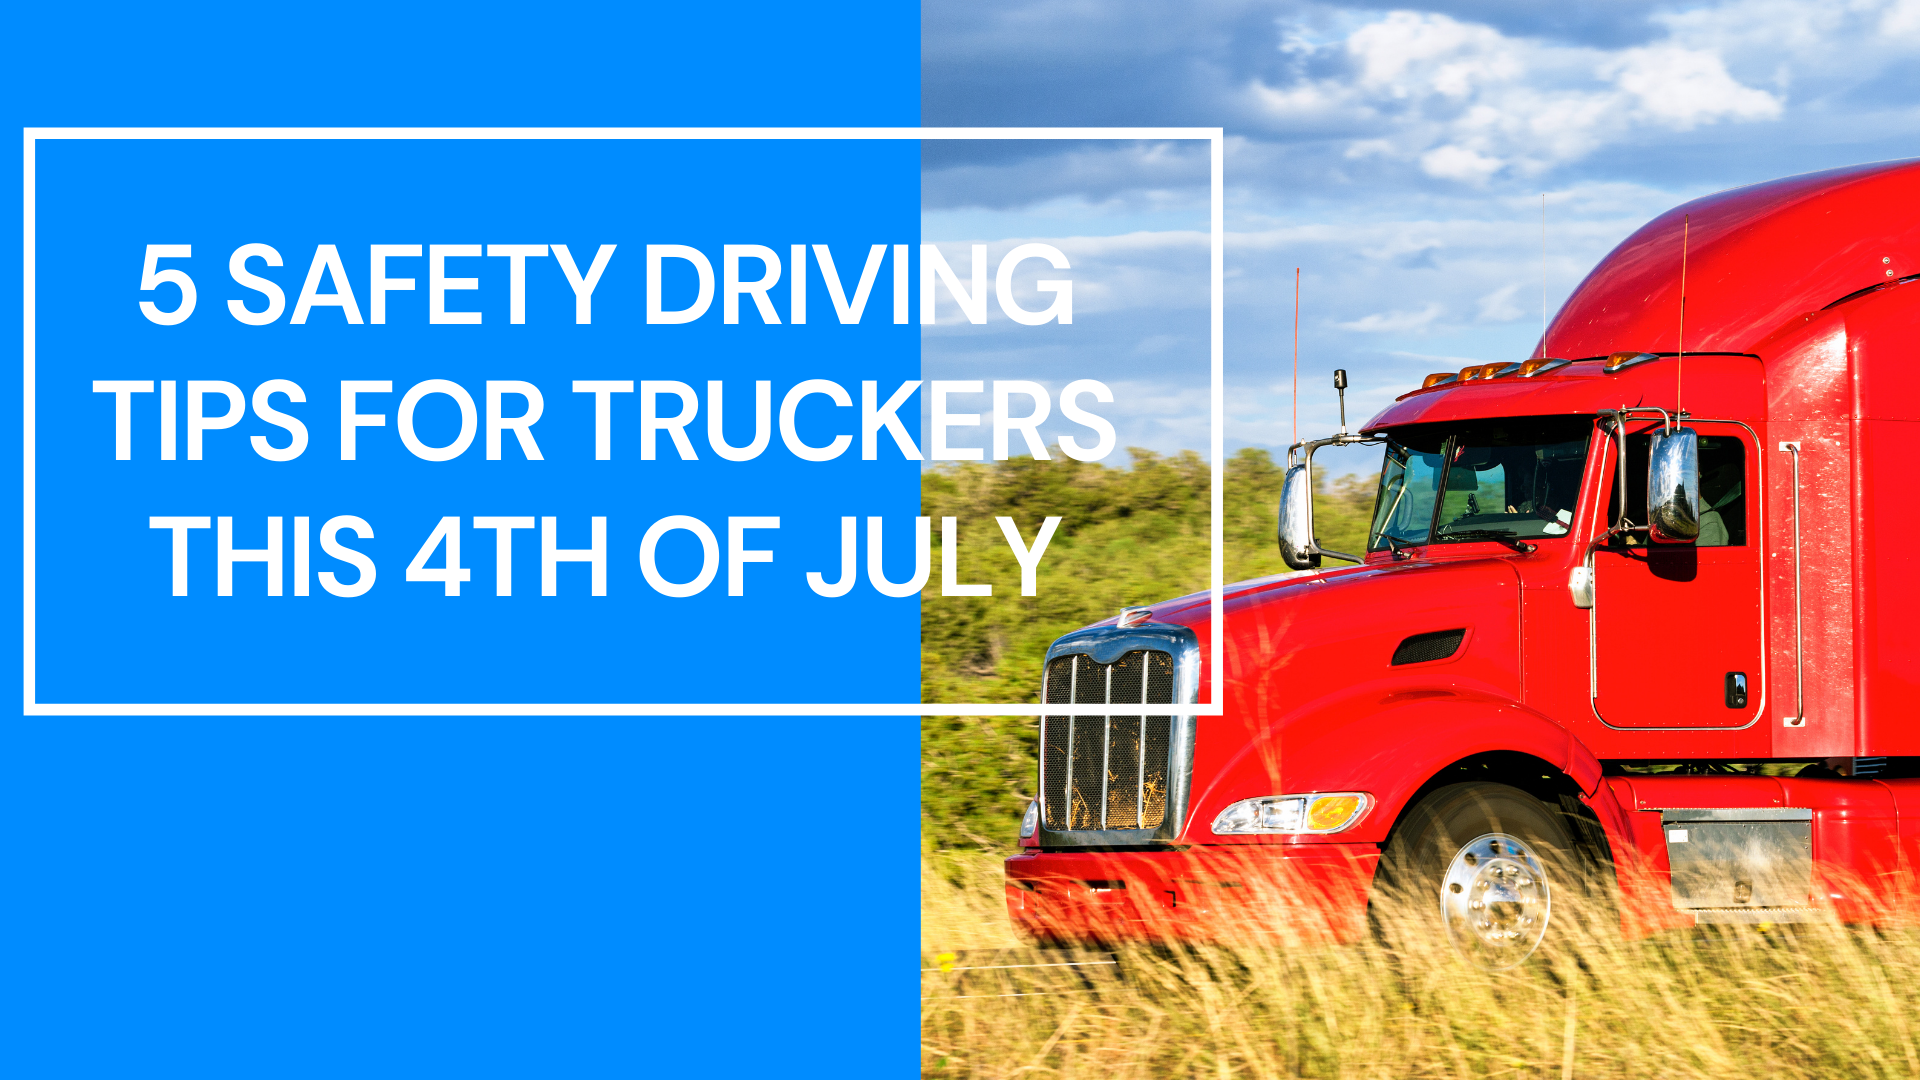 5 Safety Tips for Truckers this 4th of July